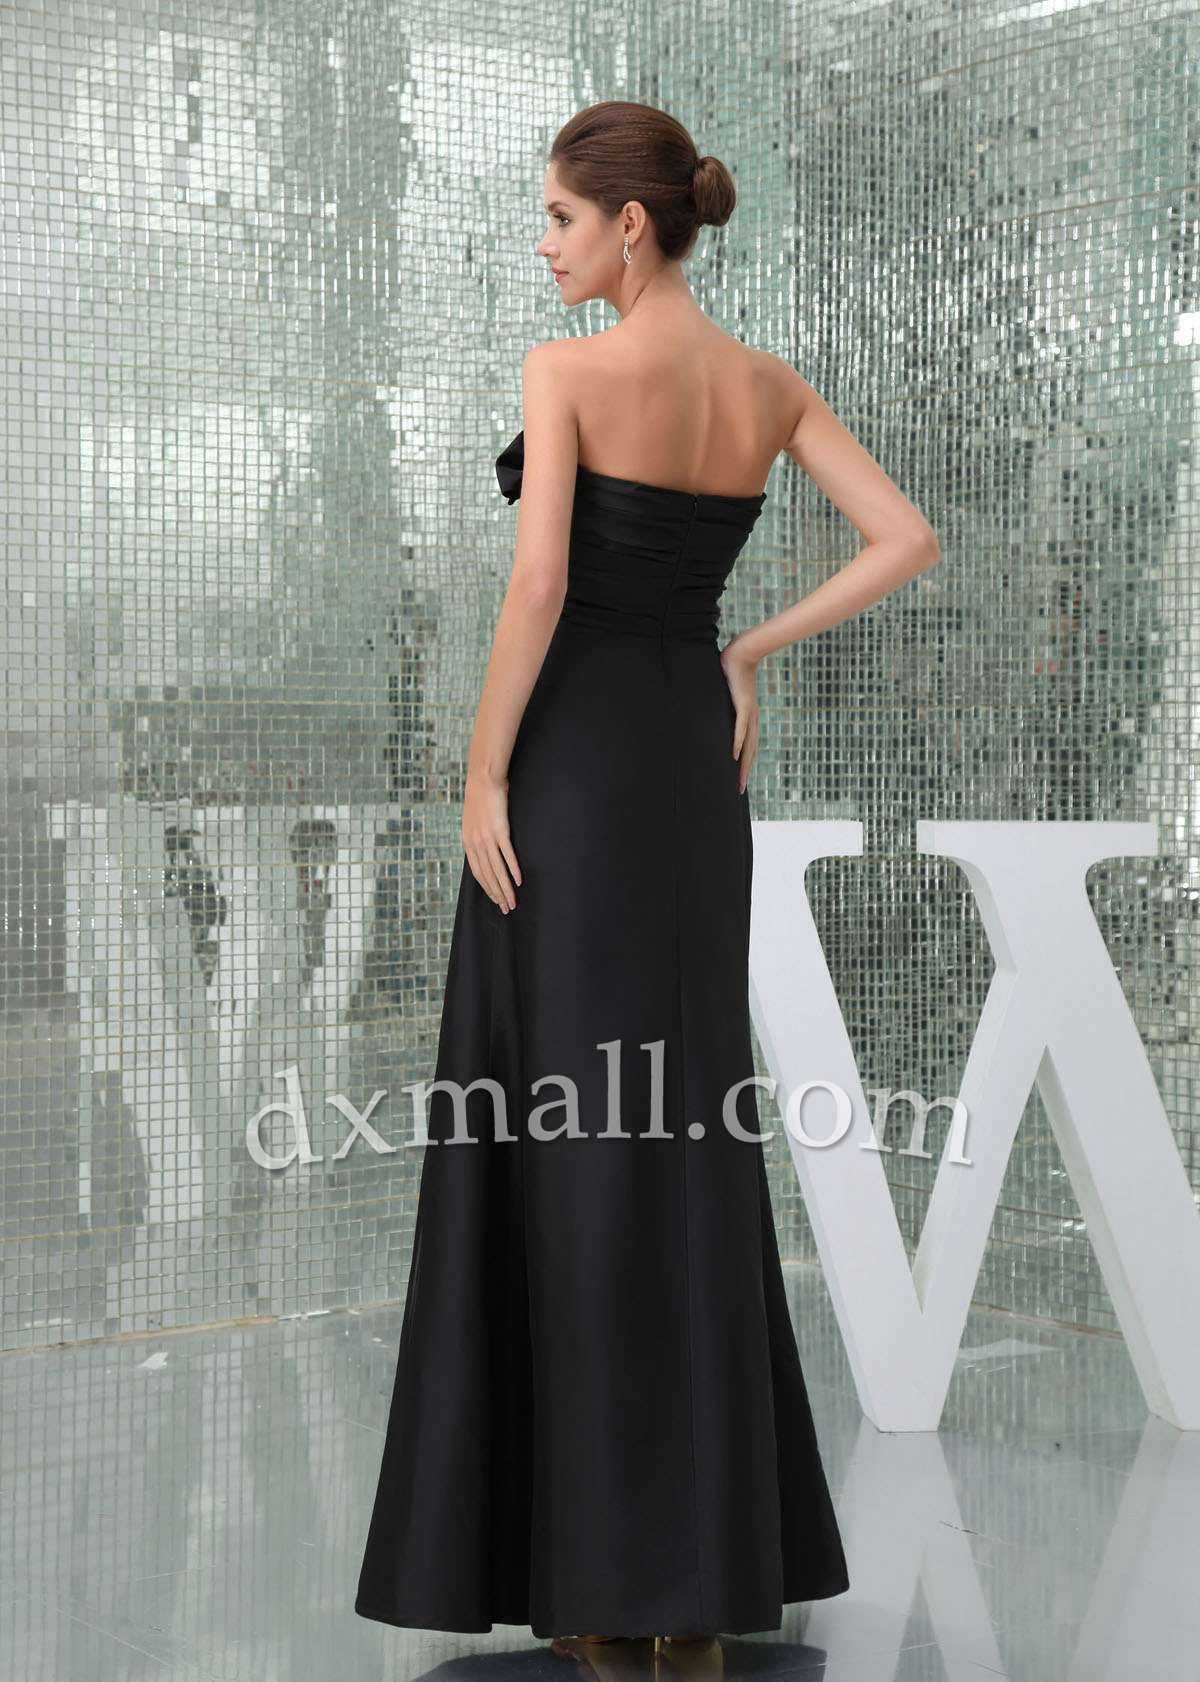 Dress for wedding party in winter  Empire Winter Formal Dresses Sweetheart Ankle Length Satin Black